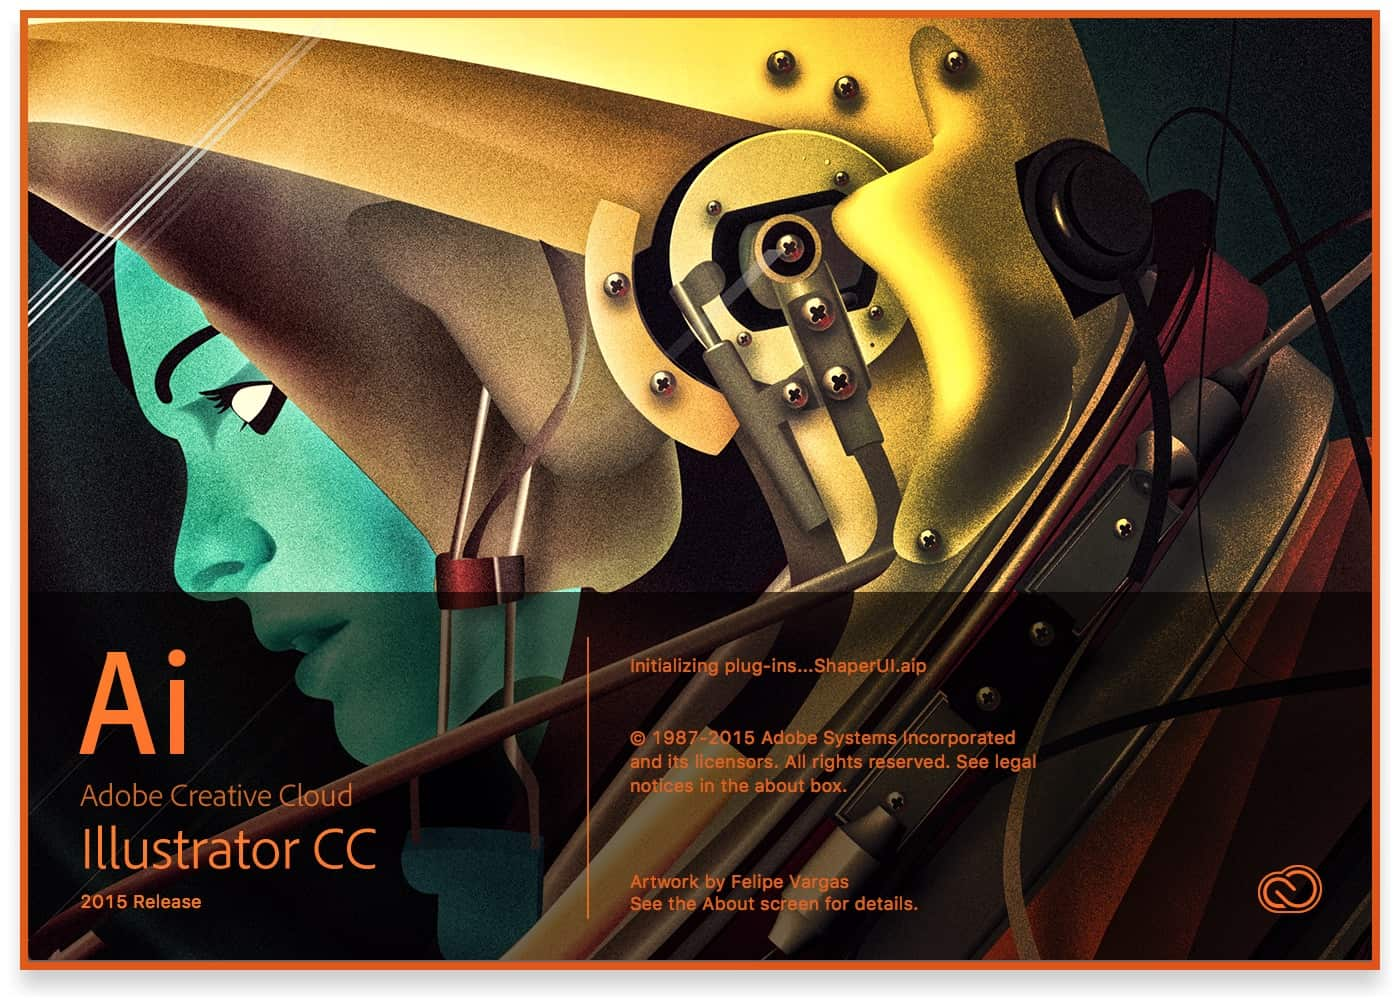 Adobe Illustrator CC 2015 (December) Splash Screen